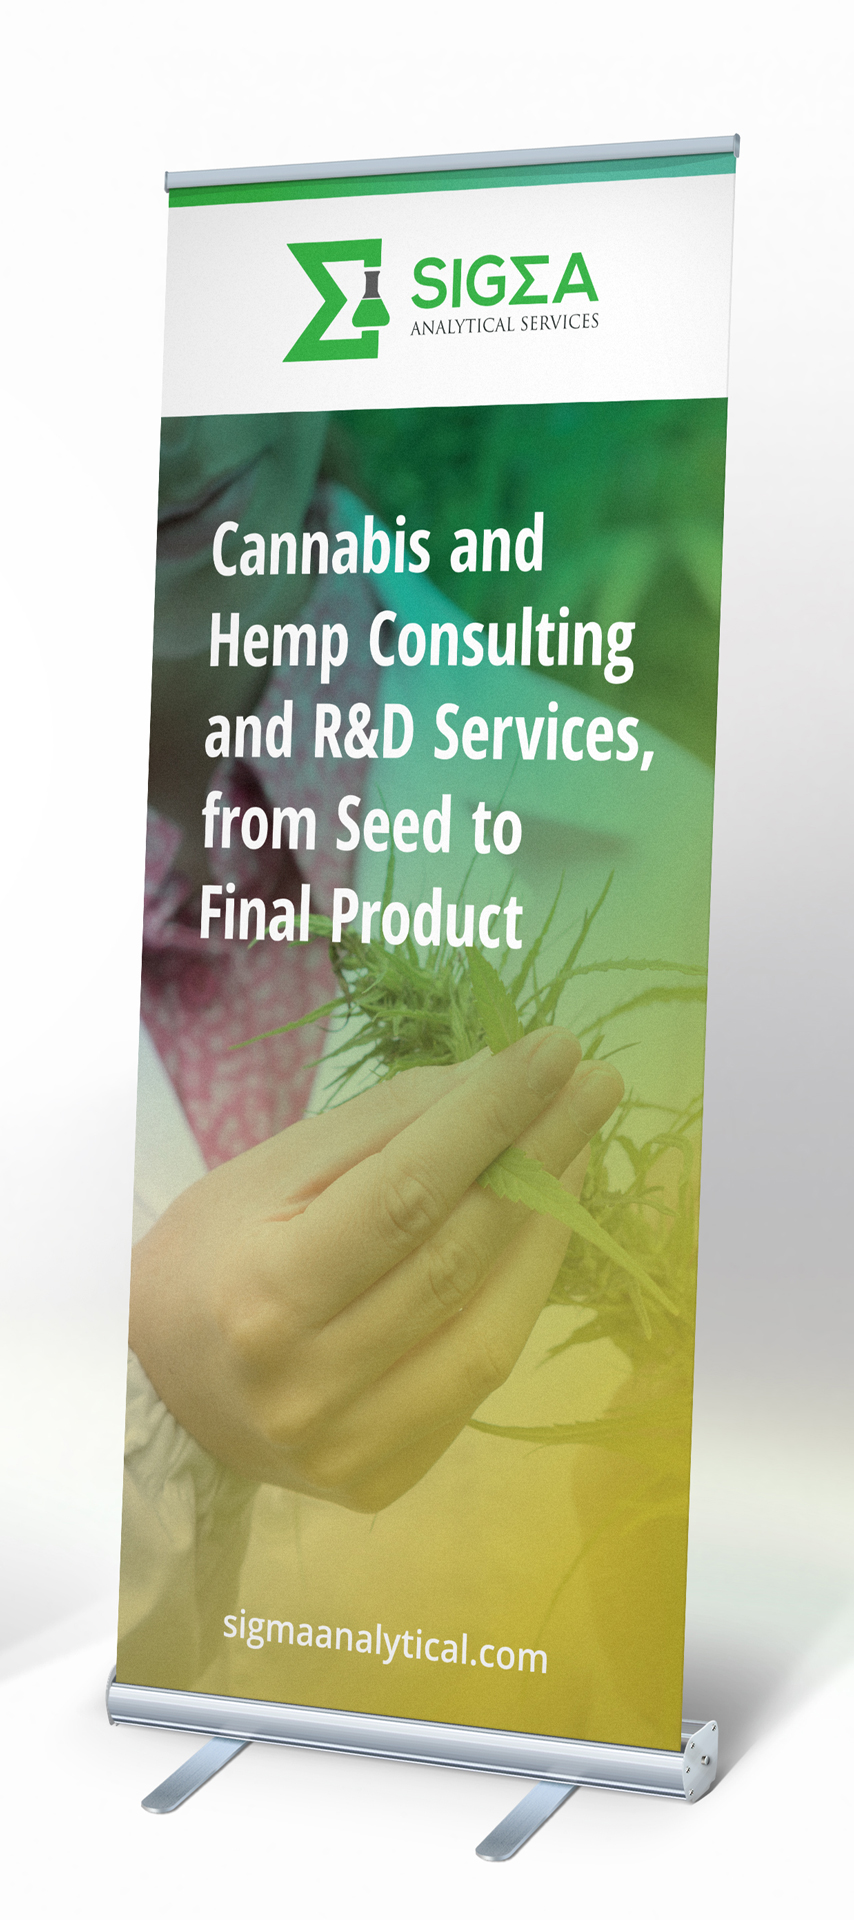 Sigma Analytical Services: Rollup-Stand - Display Design